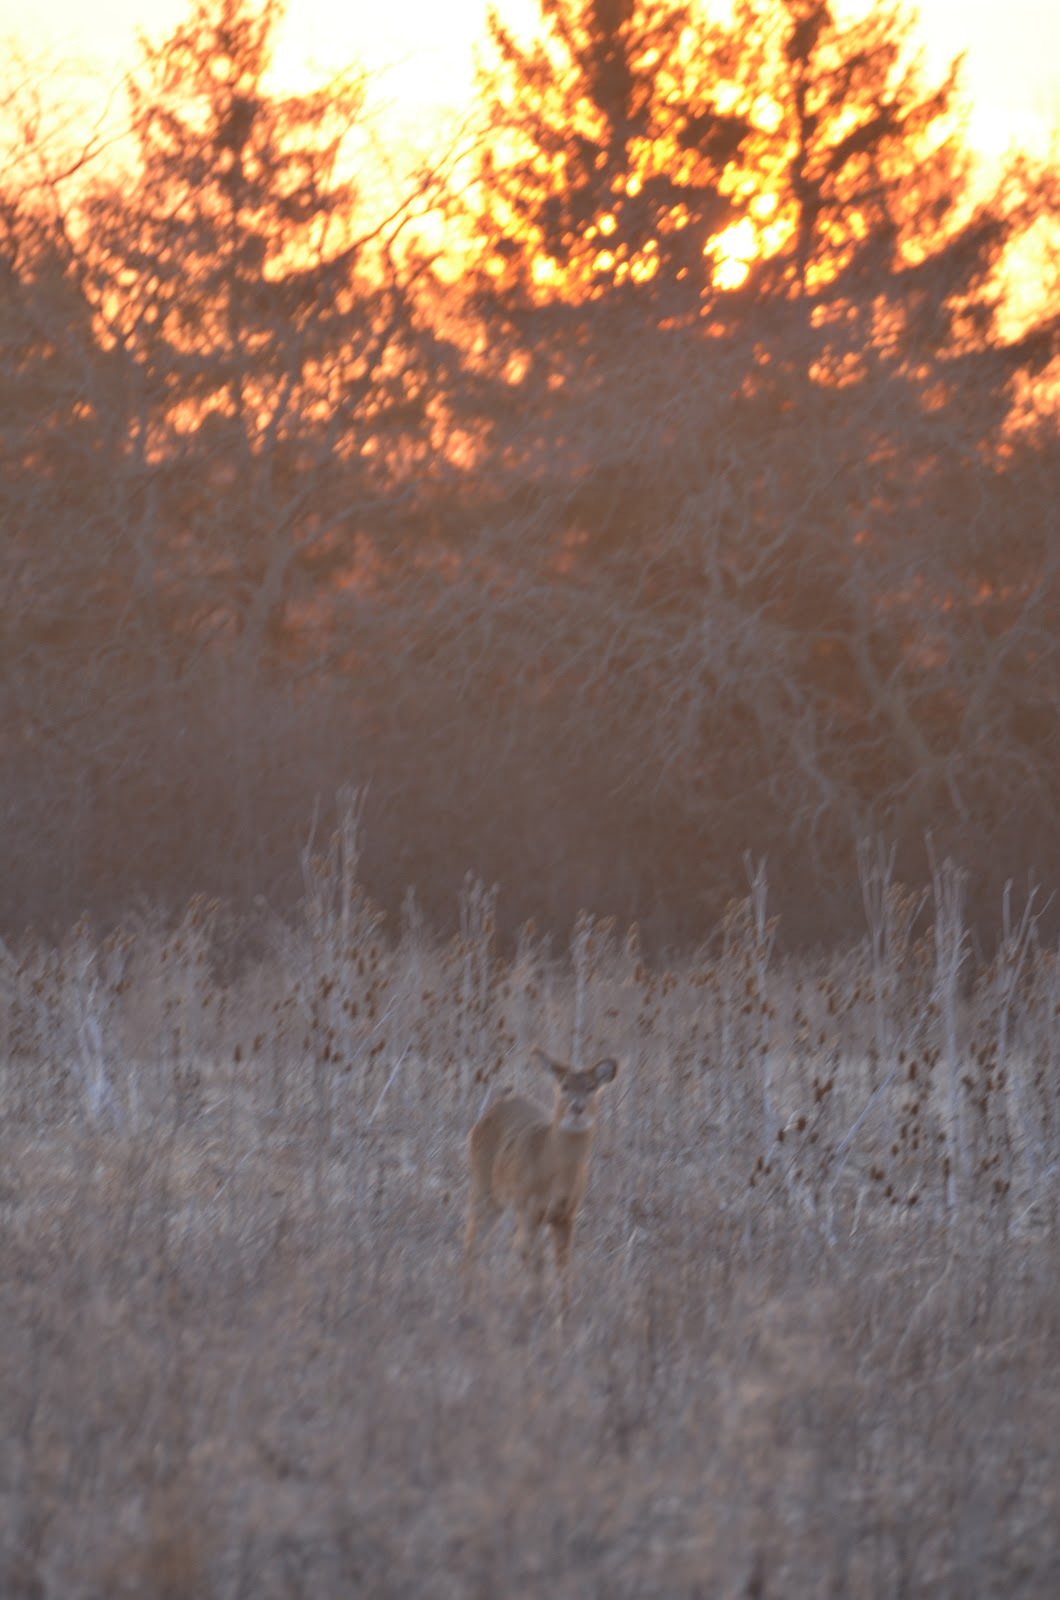 White-tailed deer detects scent and becomes wary!